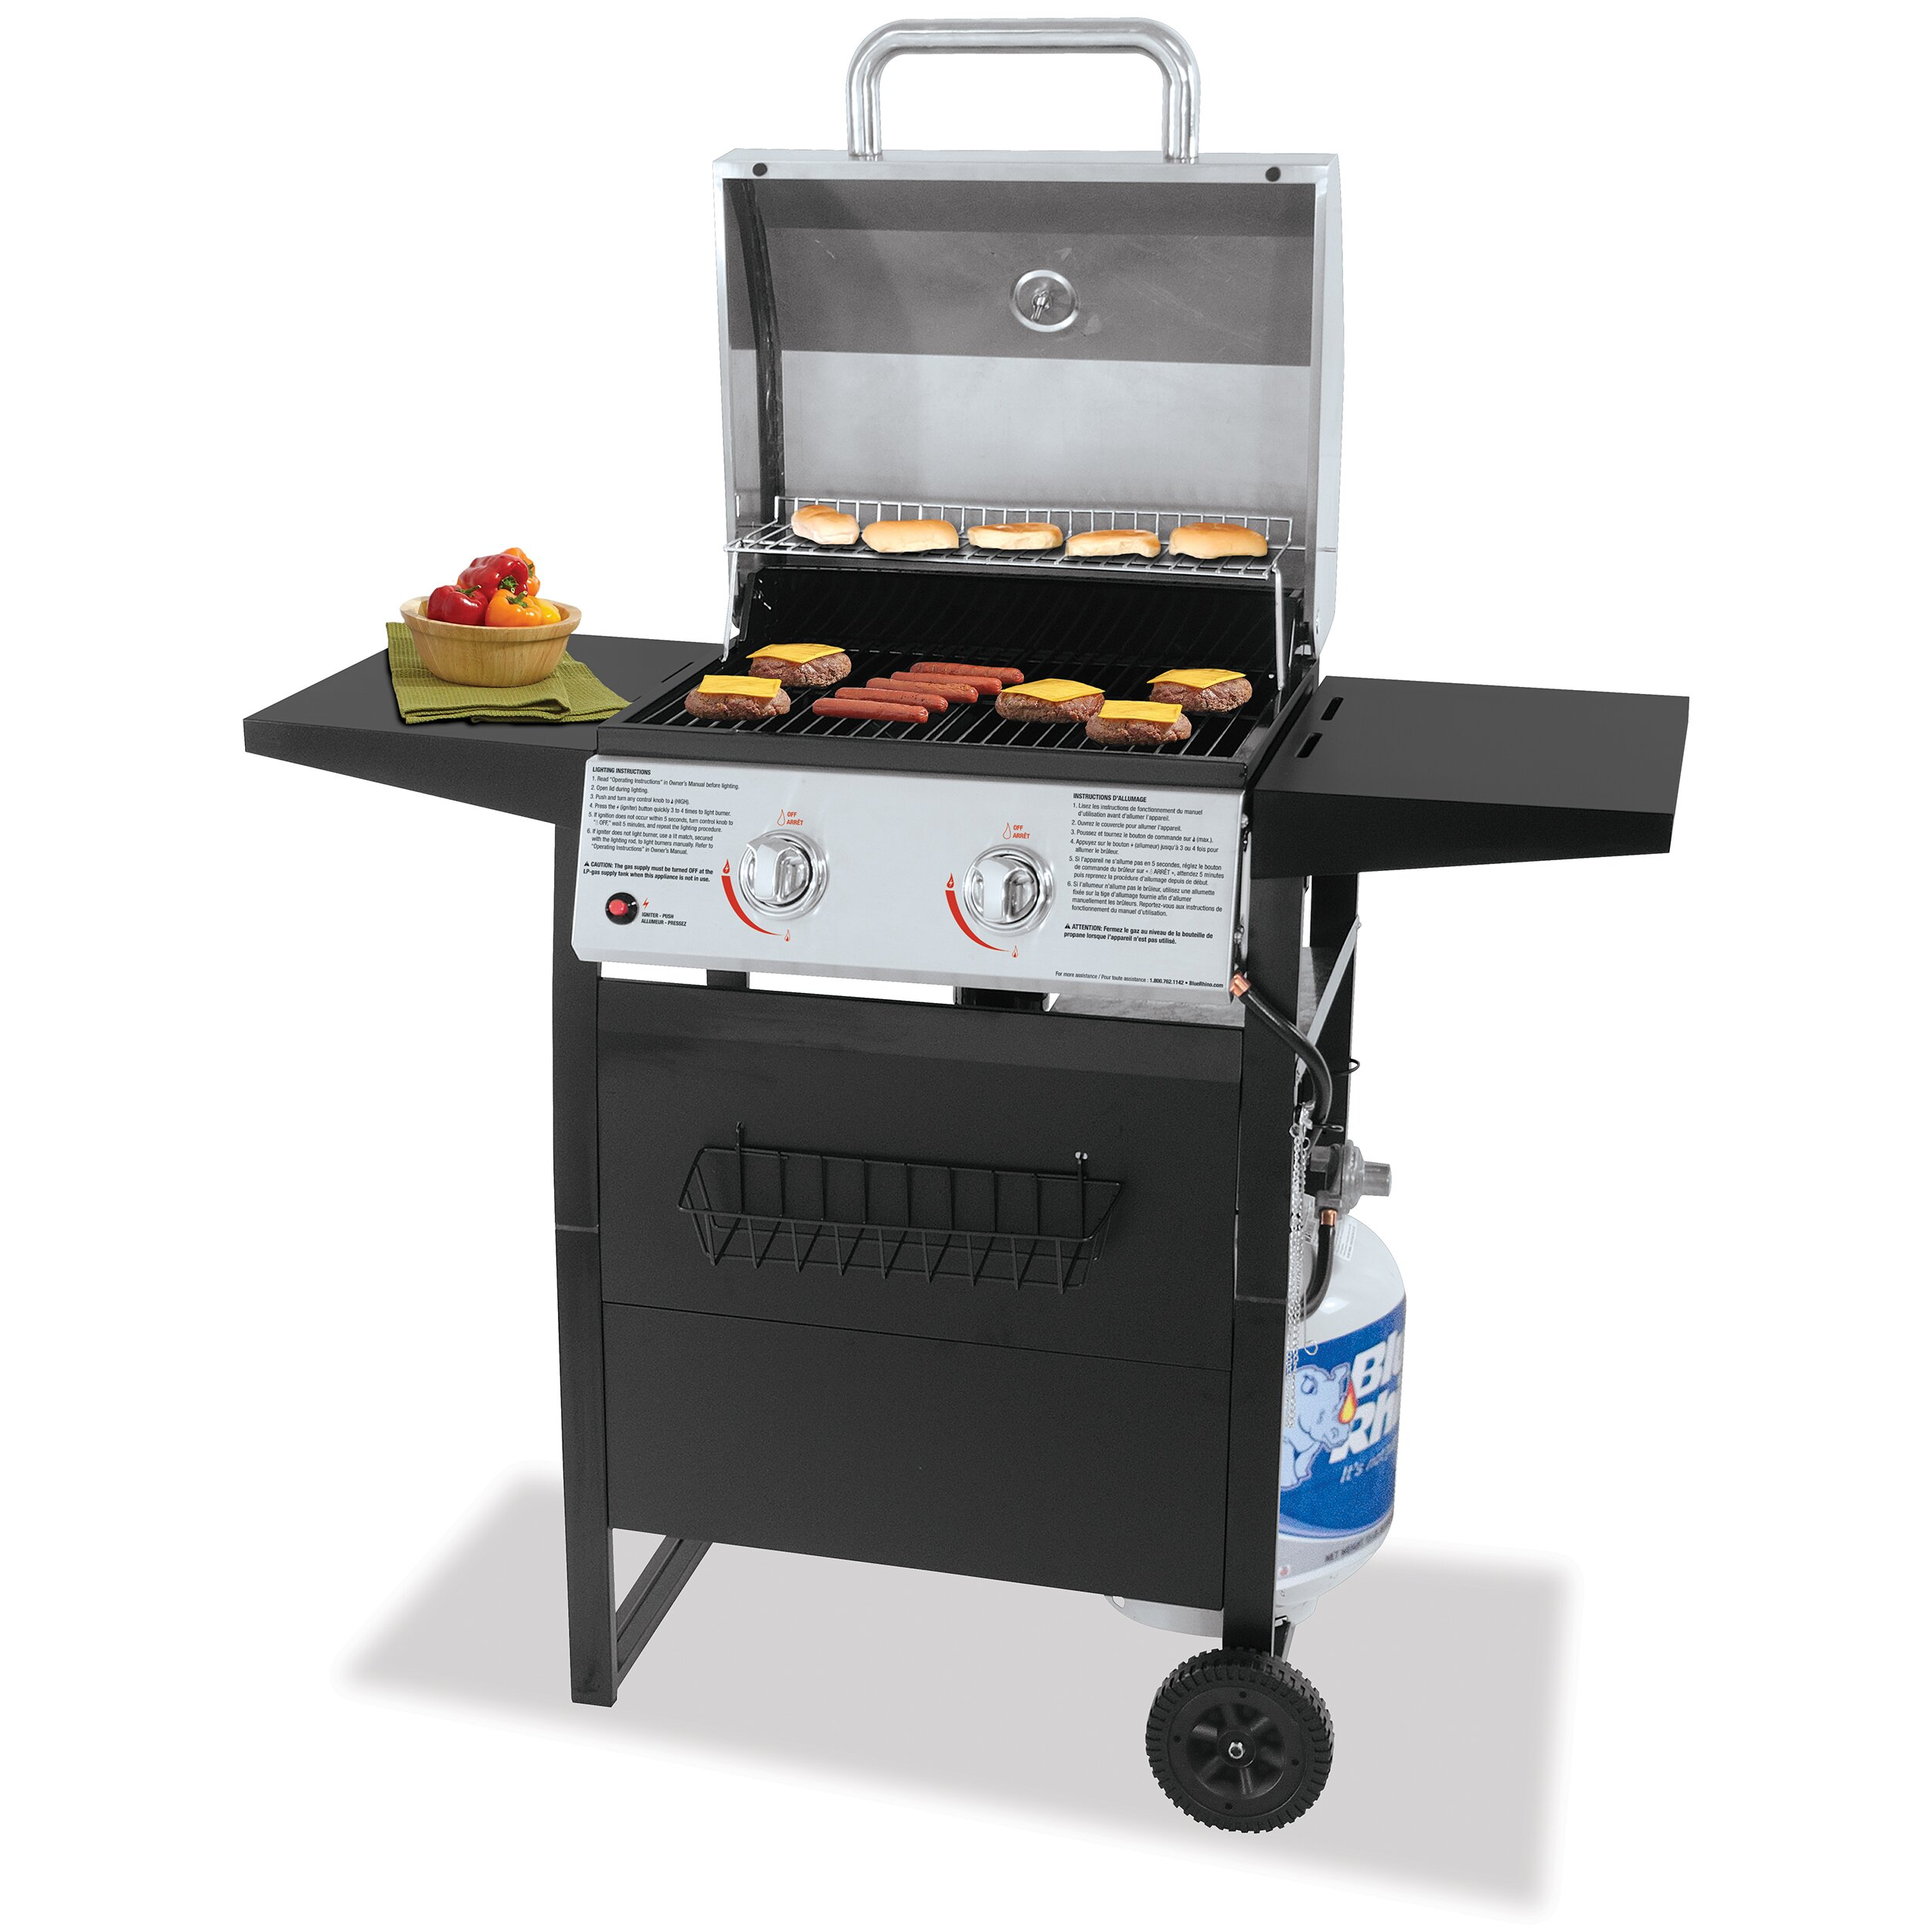 Uniflame Gas Barbecue Grill Reviews